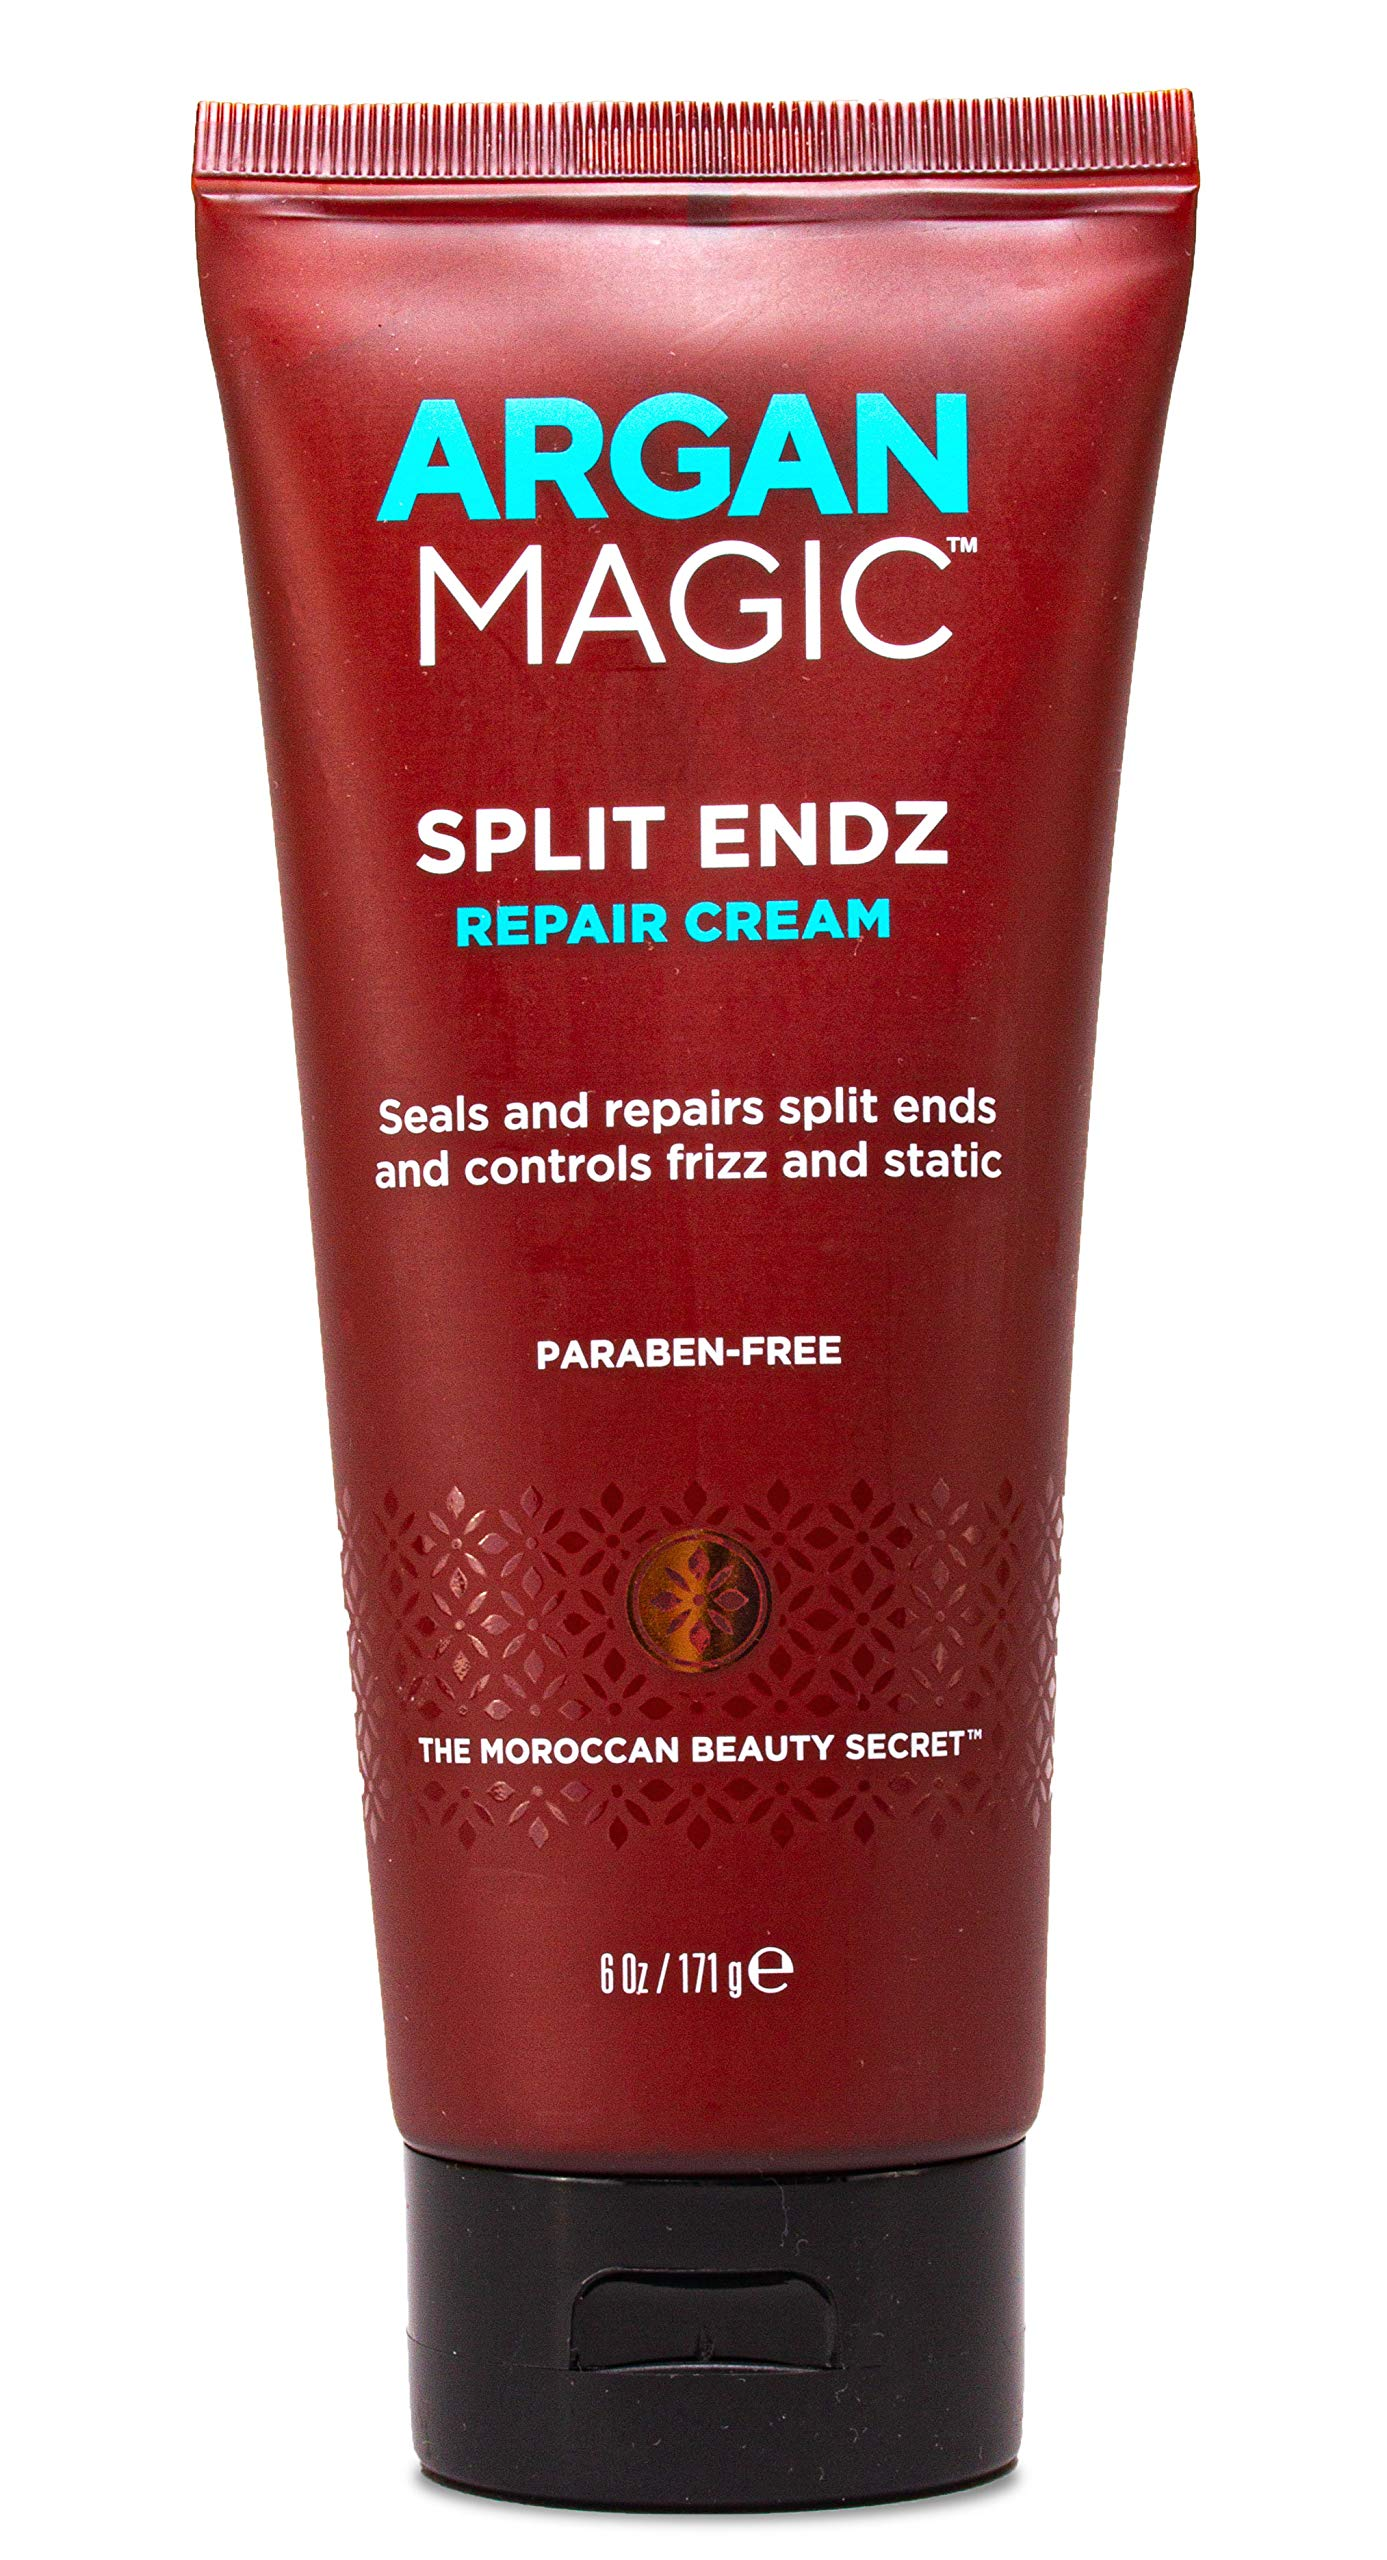 Argan Magic Split Endz Repair Cream - Instantly Binds Frayed and Separated Ends While Preventing Future Breakage (6 Ounce / 171 Gram) by Argan Magic